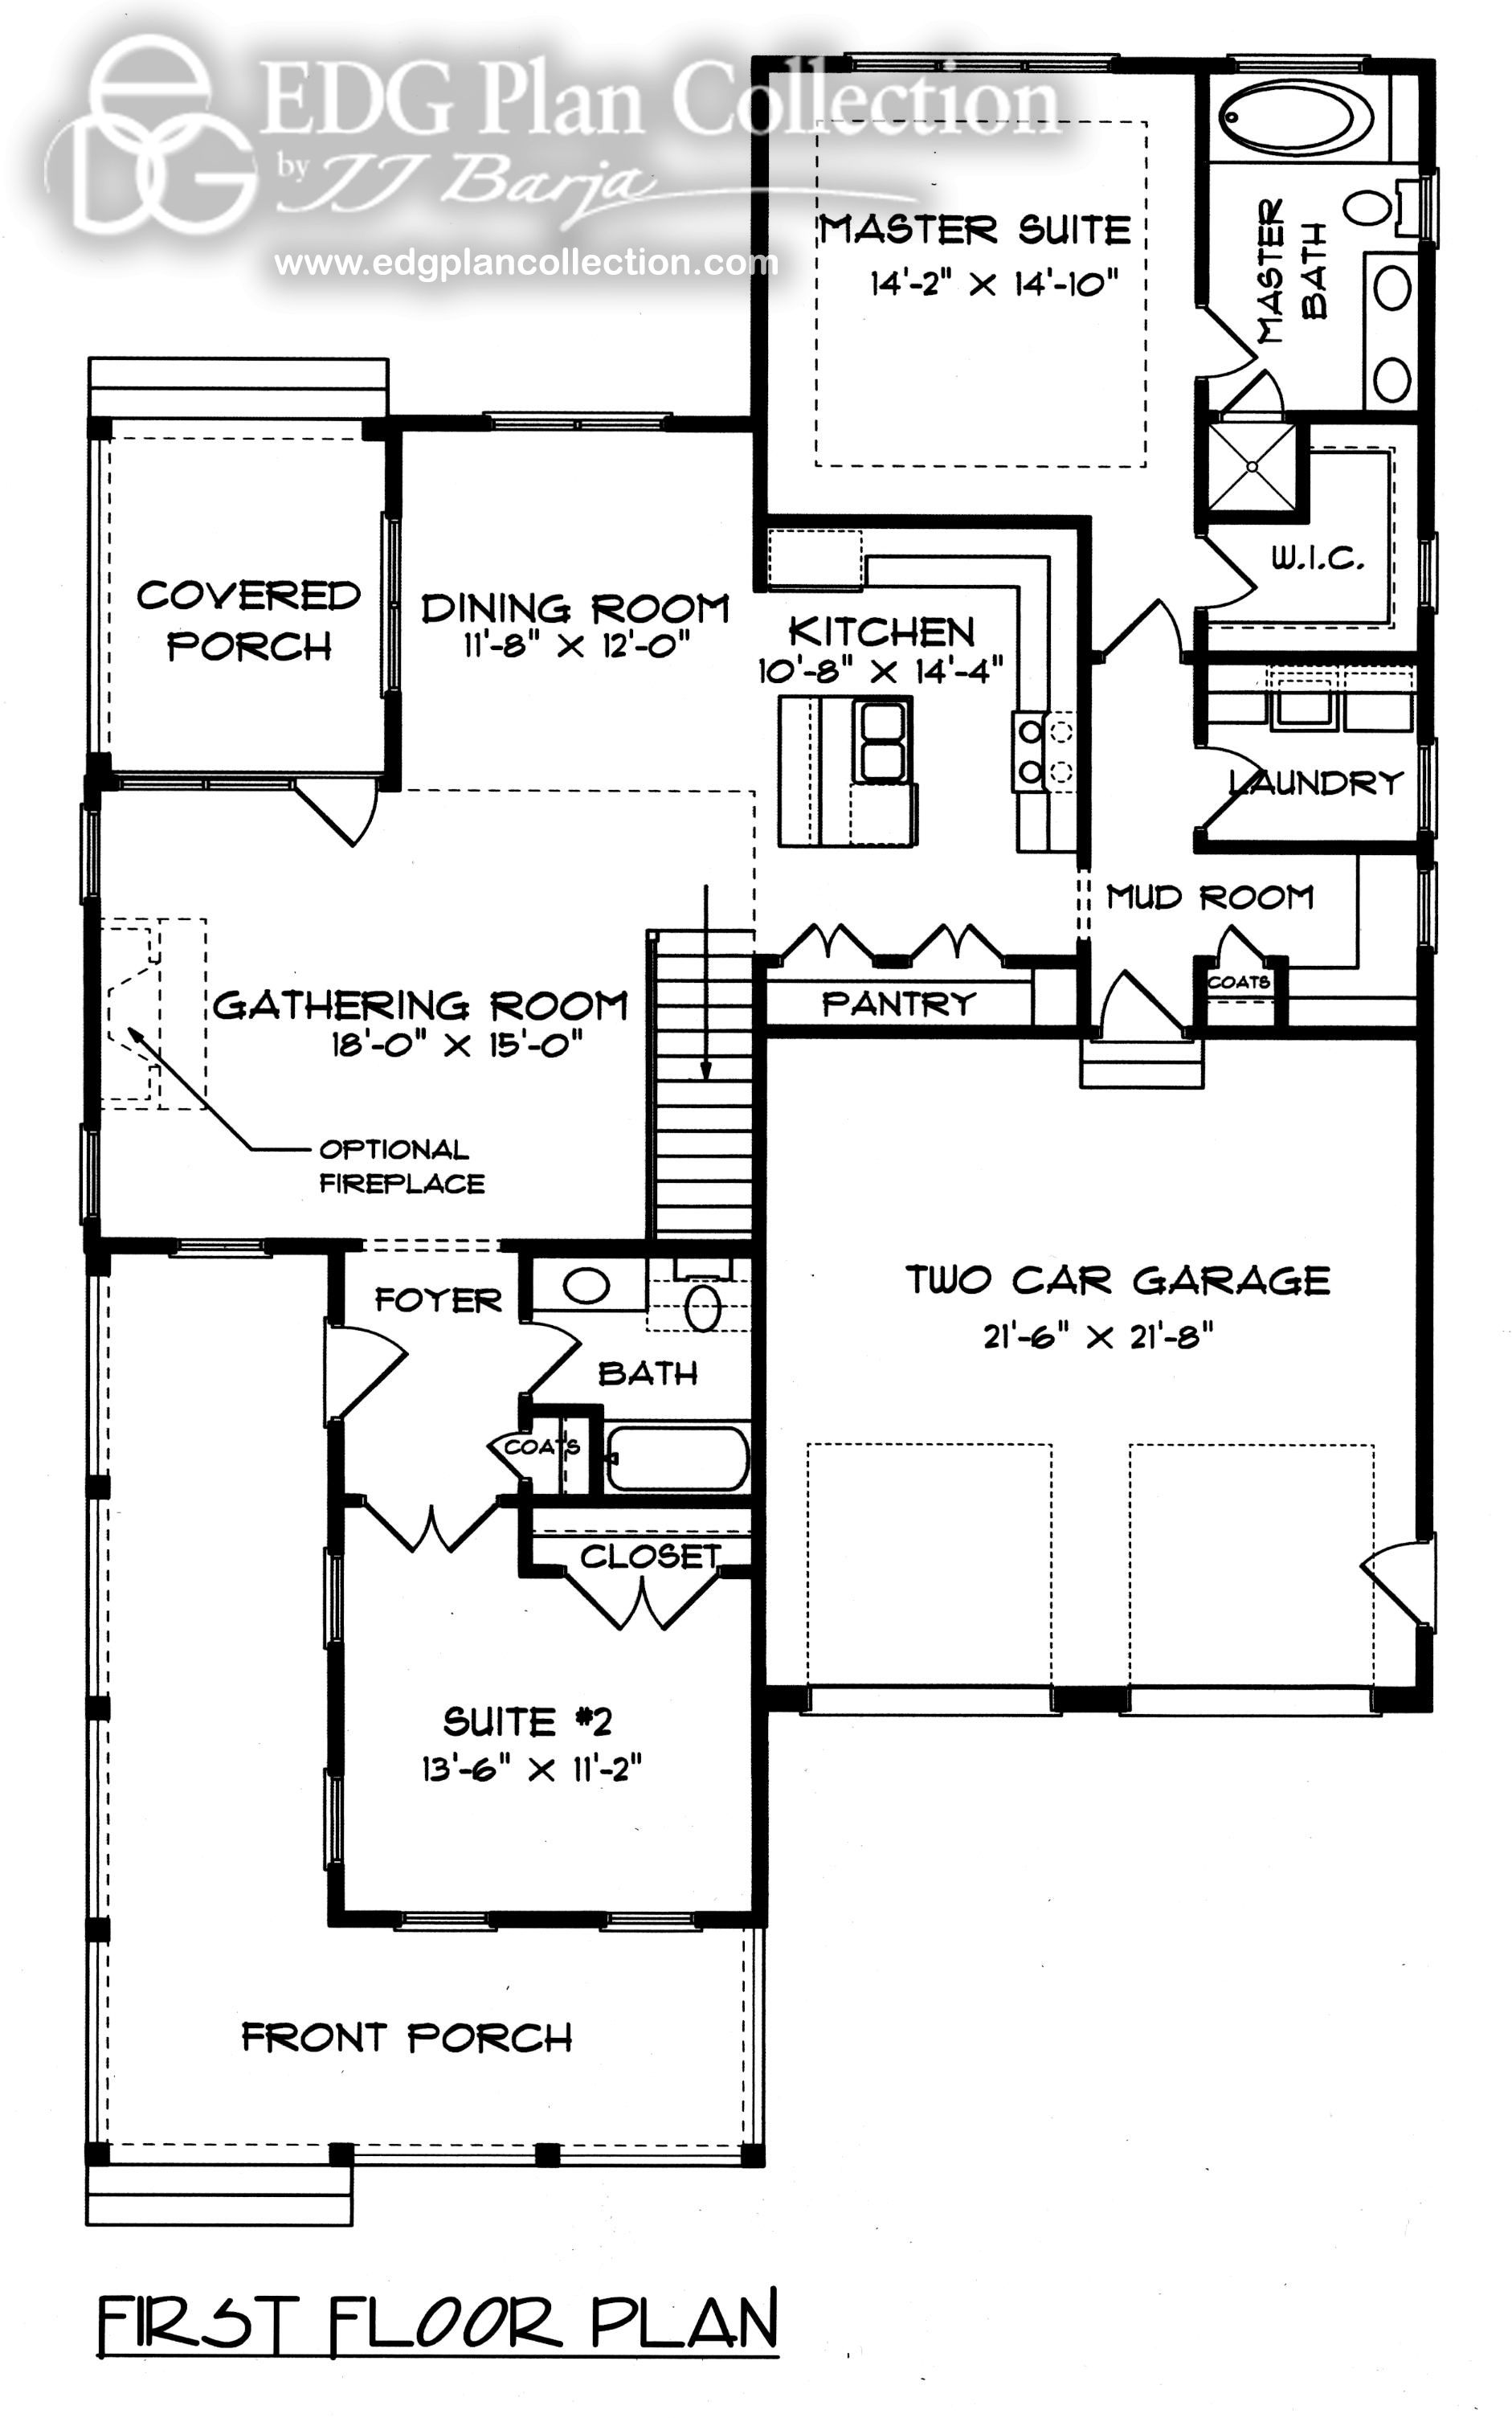 Miller Edg Plan Collection Victorian House Plans Country Style House Plans Basement House Plans